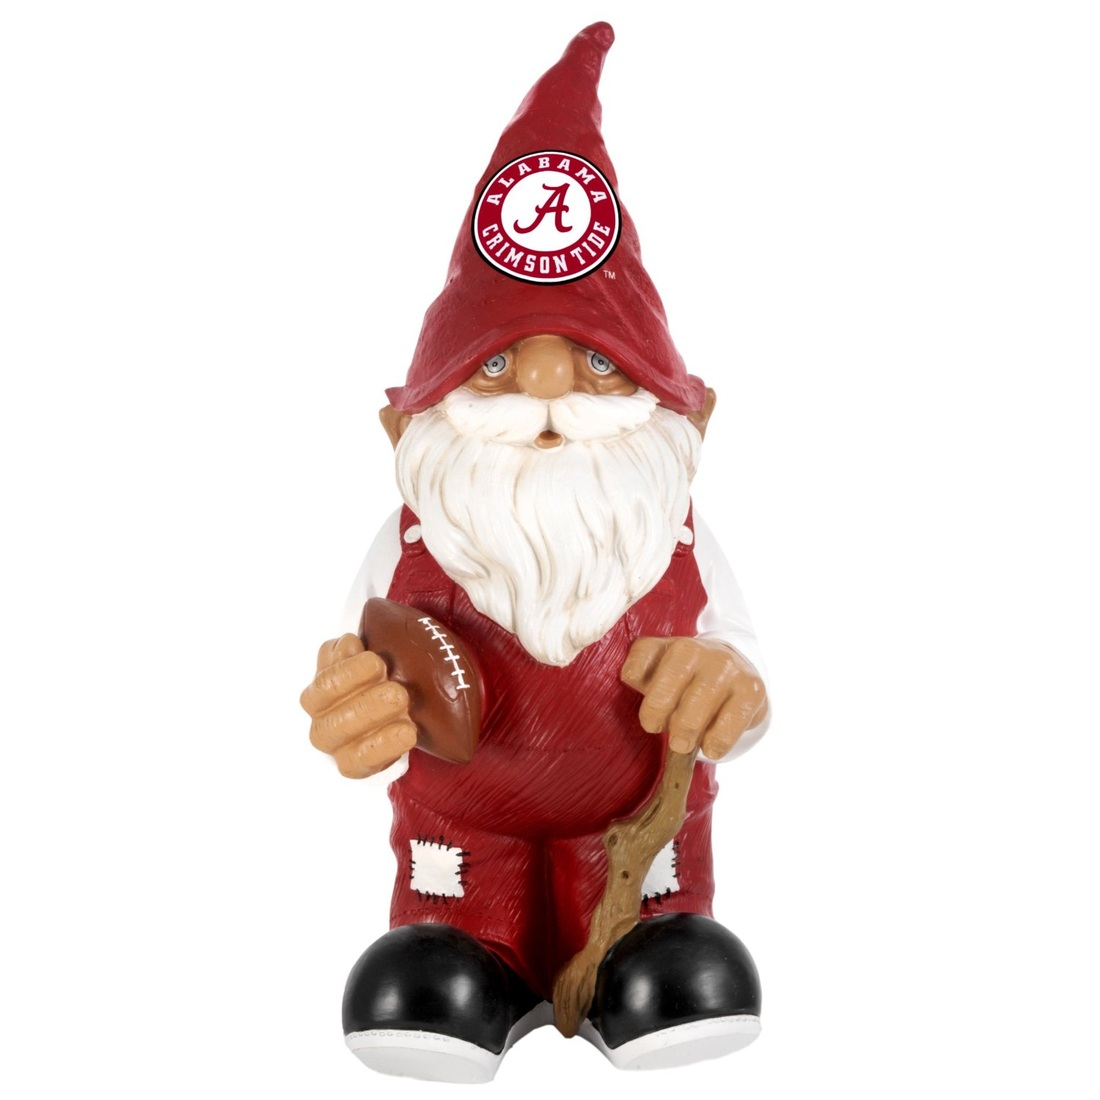 UNIVERSITY OF ALABAMA CRIMSON TIDE GARDEN GNOME